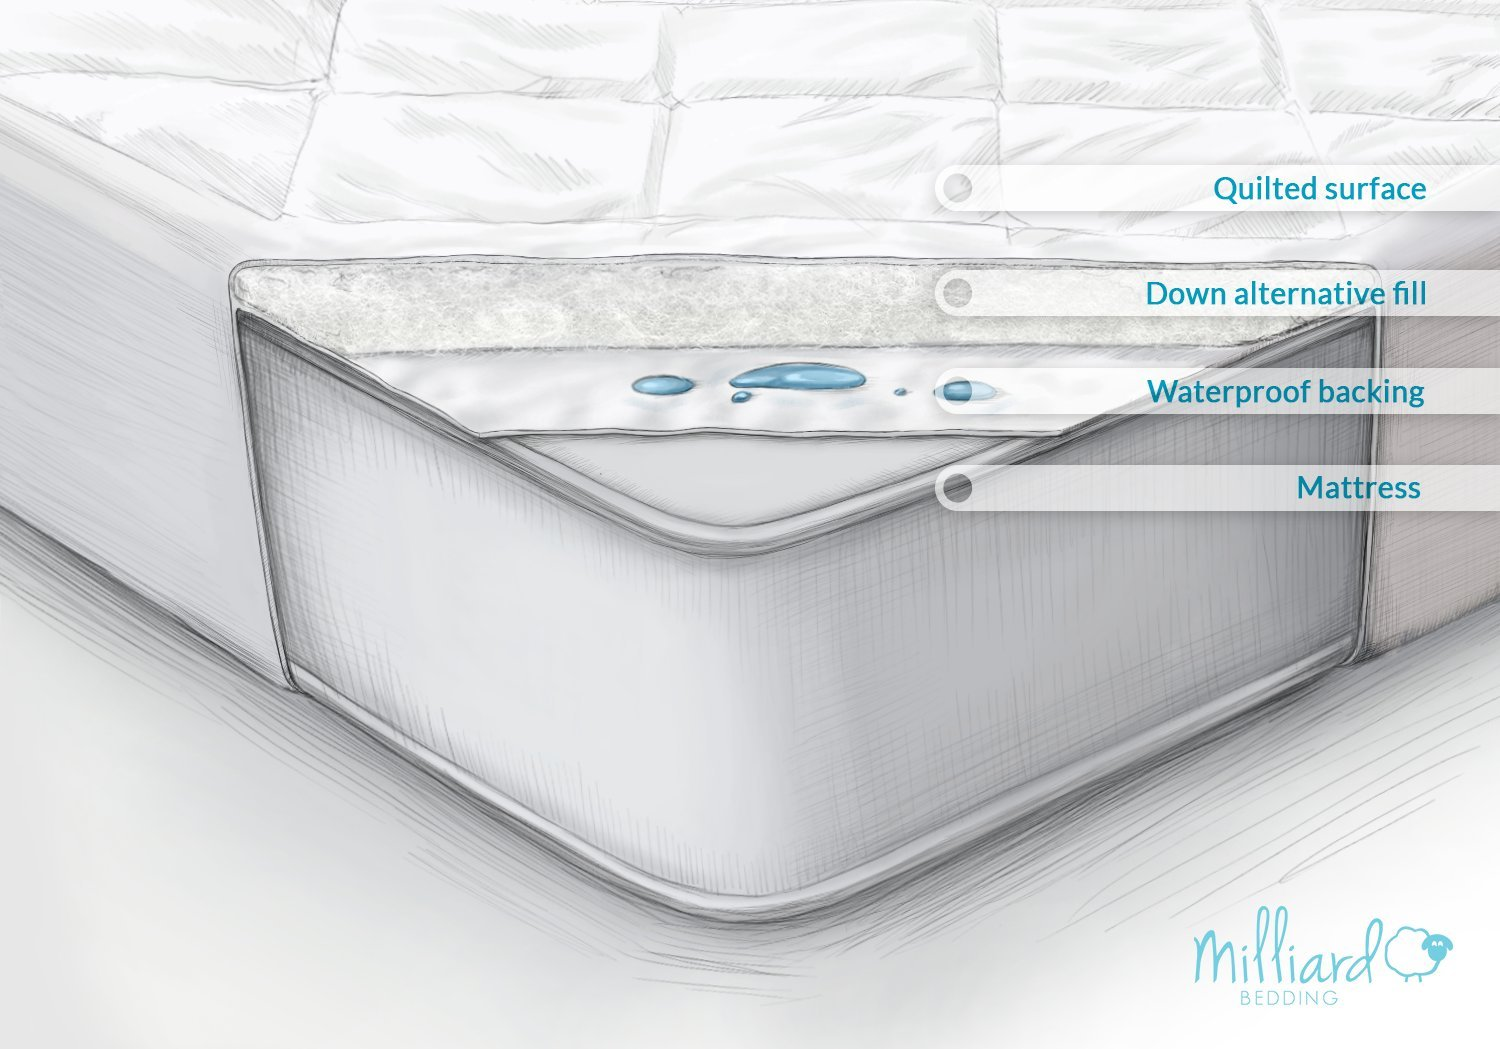 MILLIARD Quilted, Waterproof Crib & Toddler Mattress Protector Pad, Premium Hypoallergenic Fitted Cover with Extra Padding 28x52x6 by Milliard (Image #3)